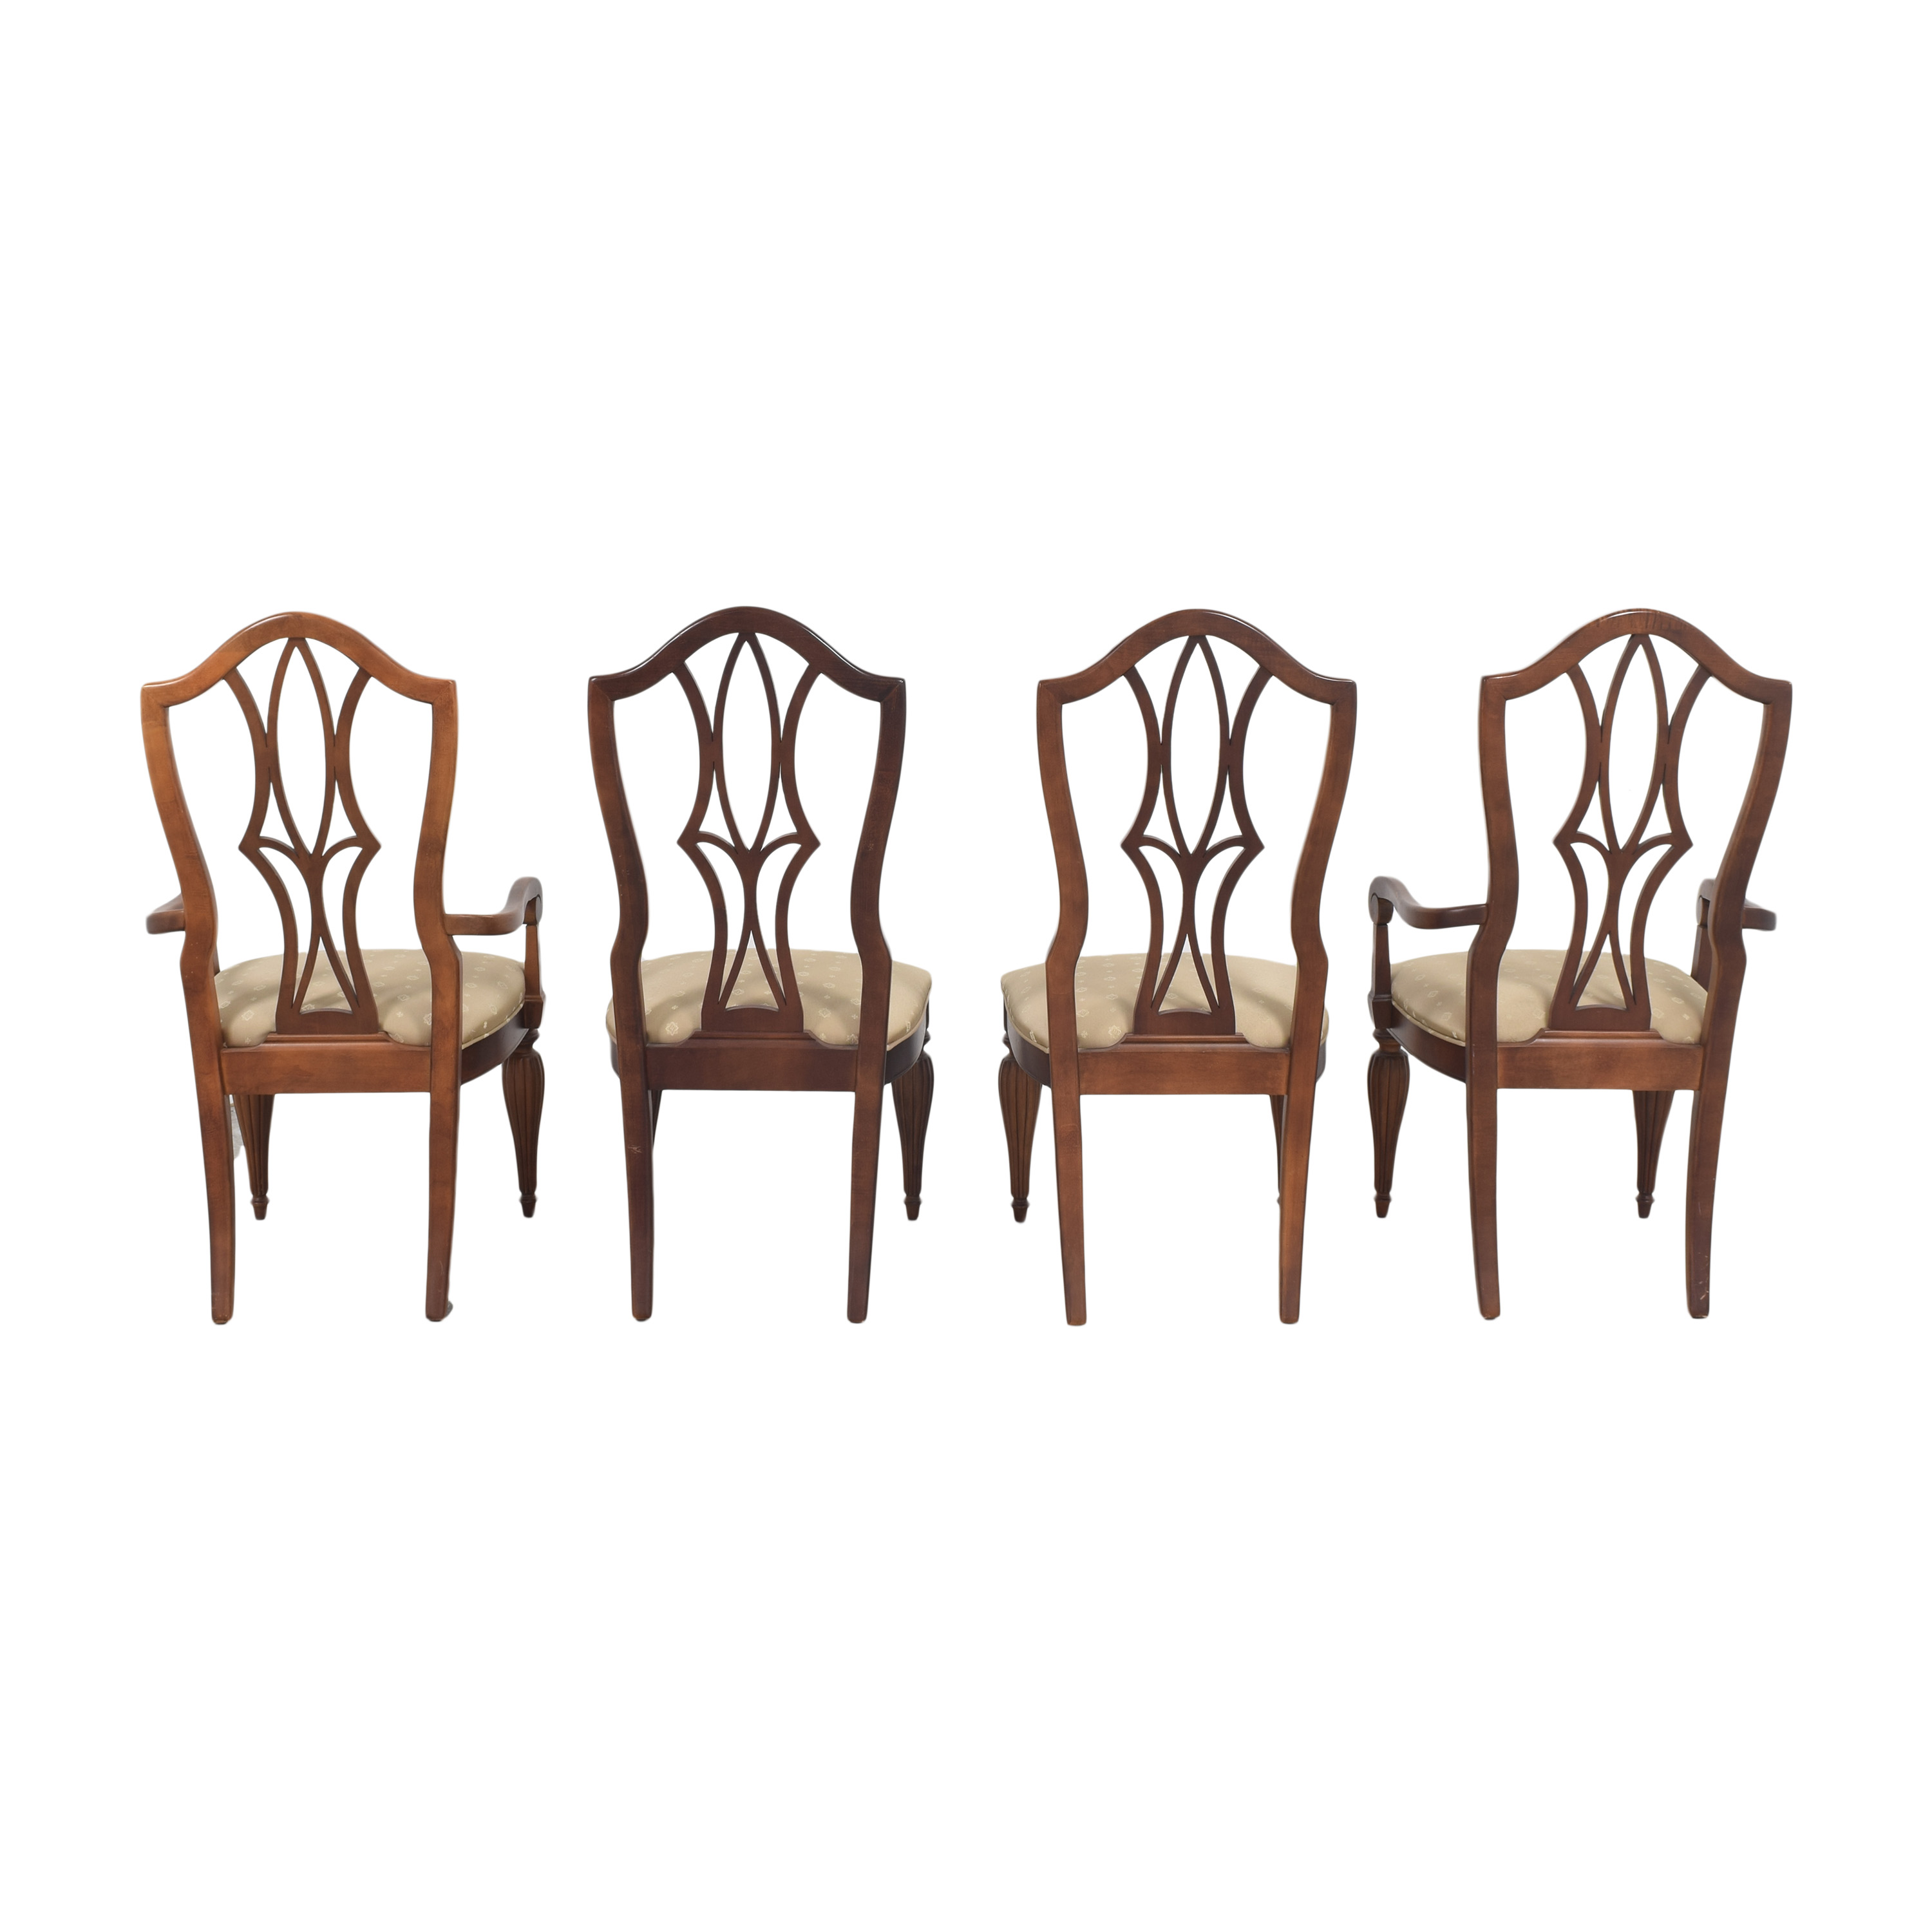 Stanley Furniture Upholstered Dining Chairs Stanley Furniture